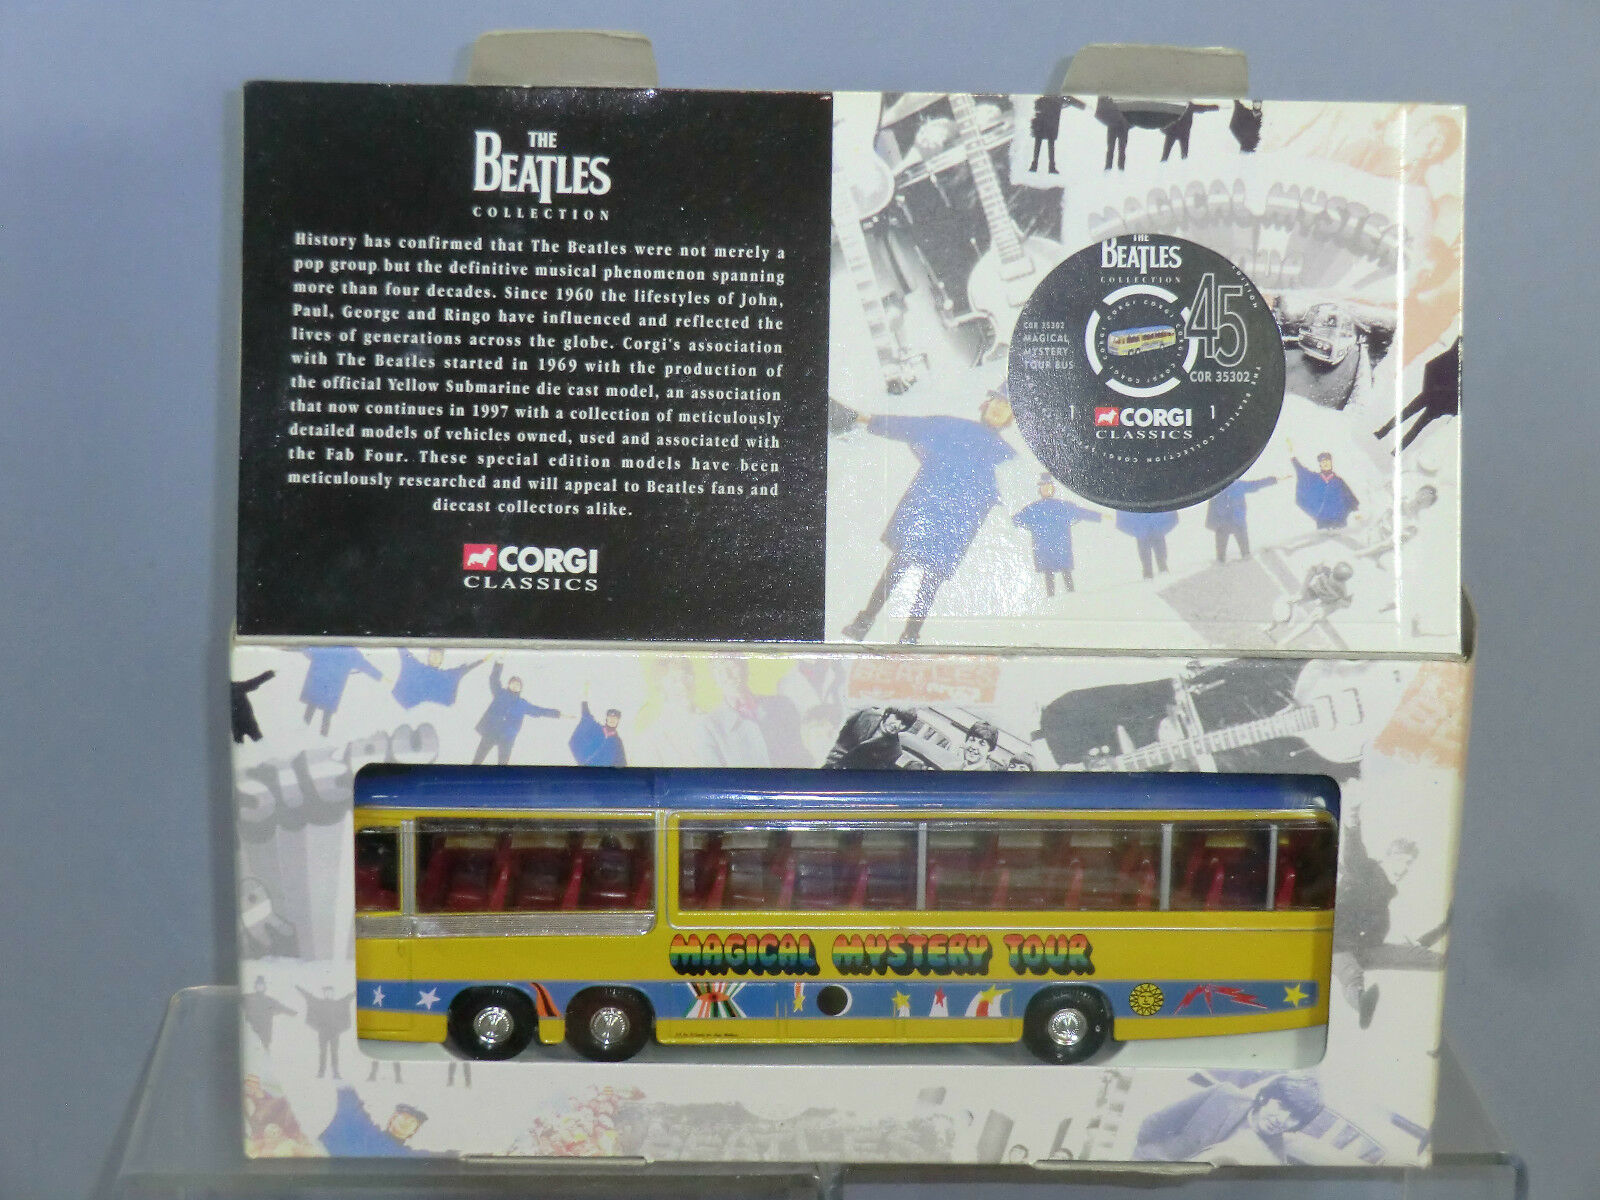 Corgi spielzeug - modell no.35302  beatles  -  magical mystery tour - bus  mib